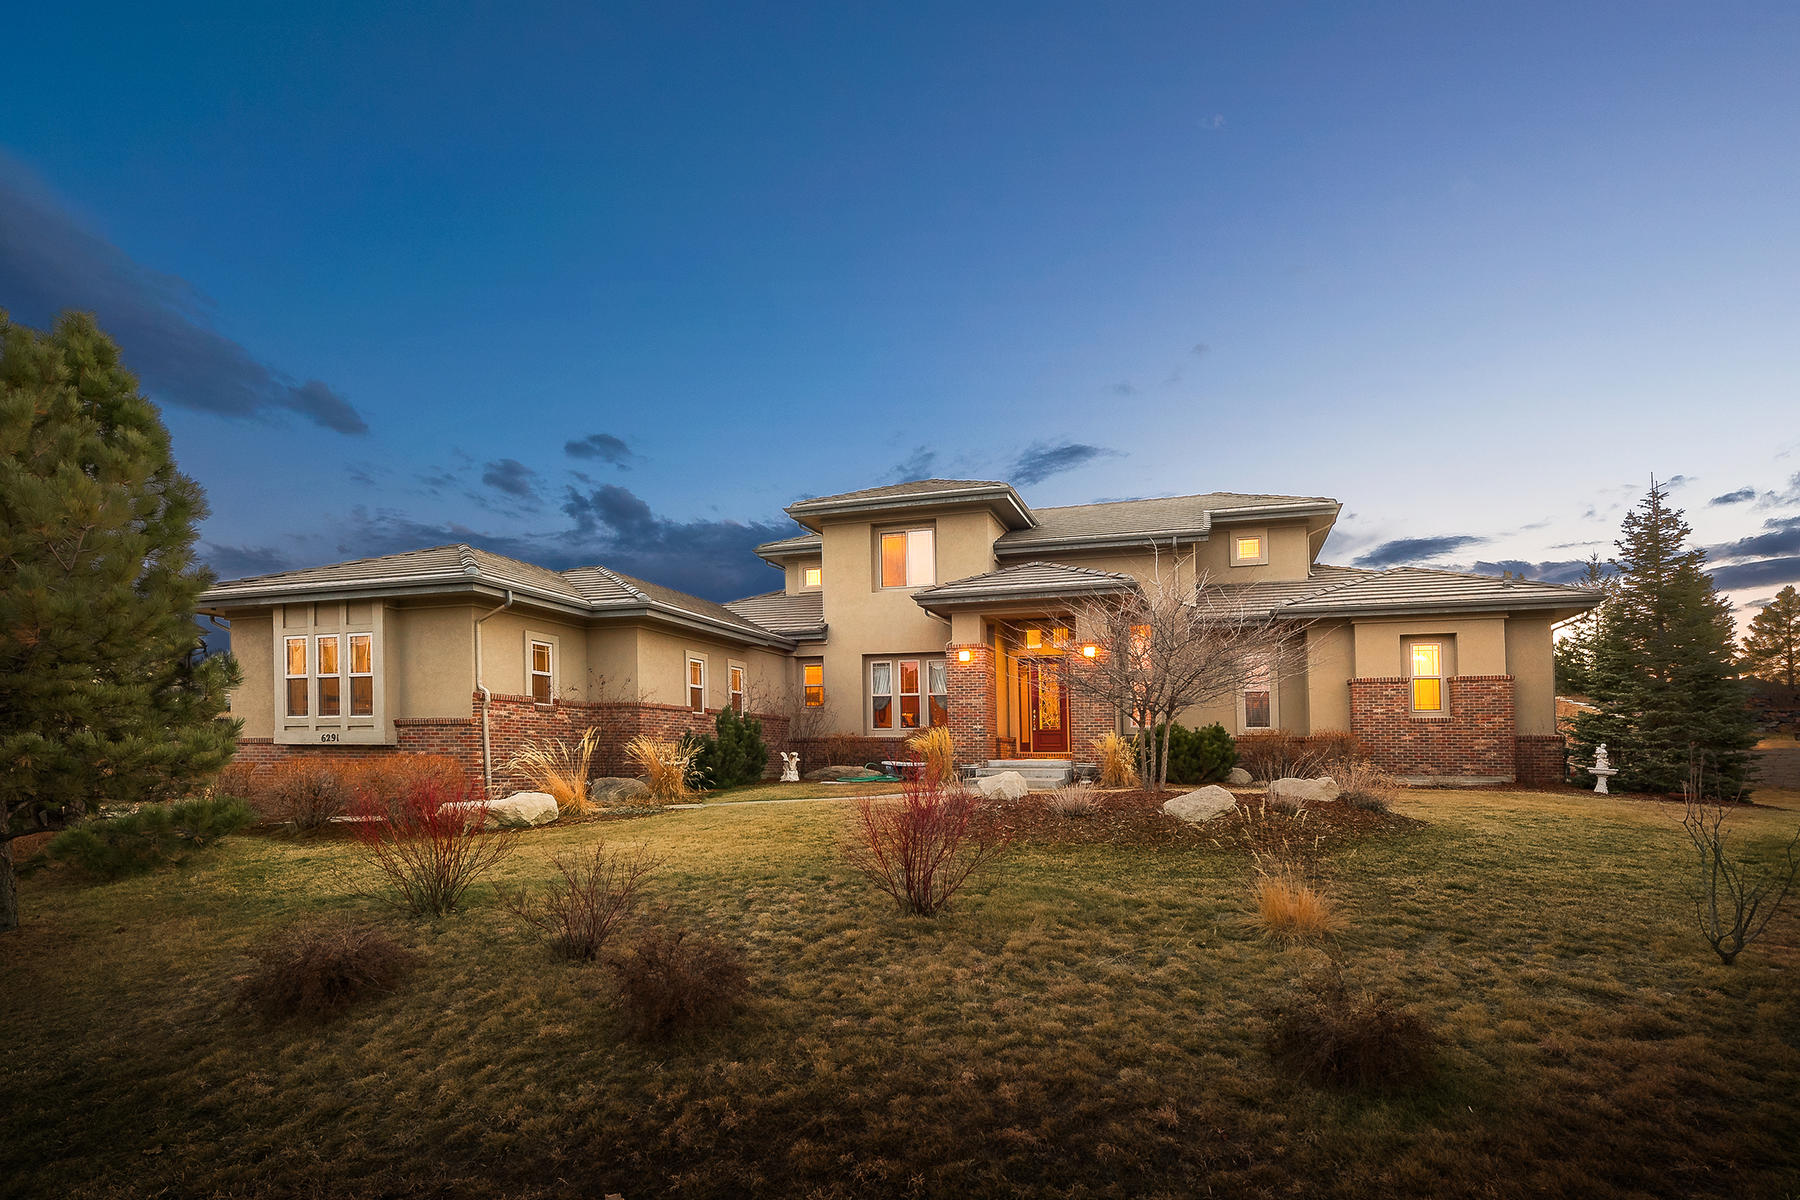 Single Family Home for Active at 6291 Ellingwood Point Way 6291 Ellingwood Point Way Castle Rock, Colorado 80108 United States